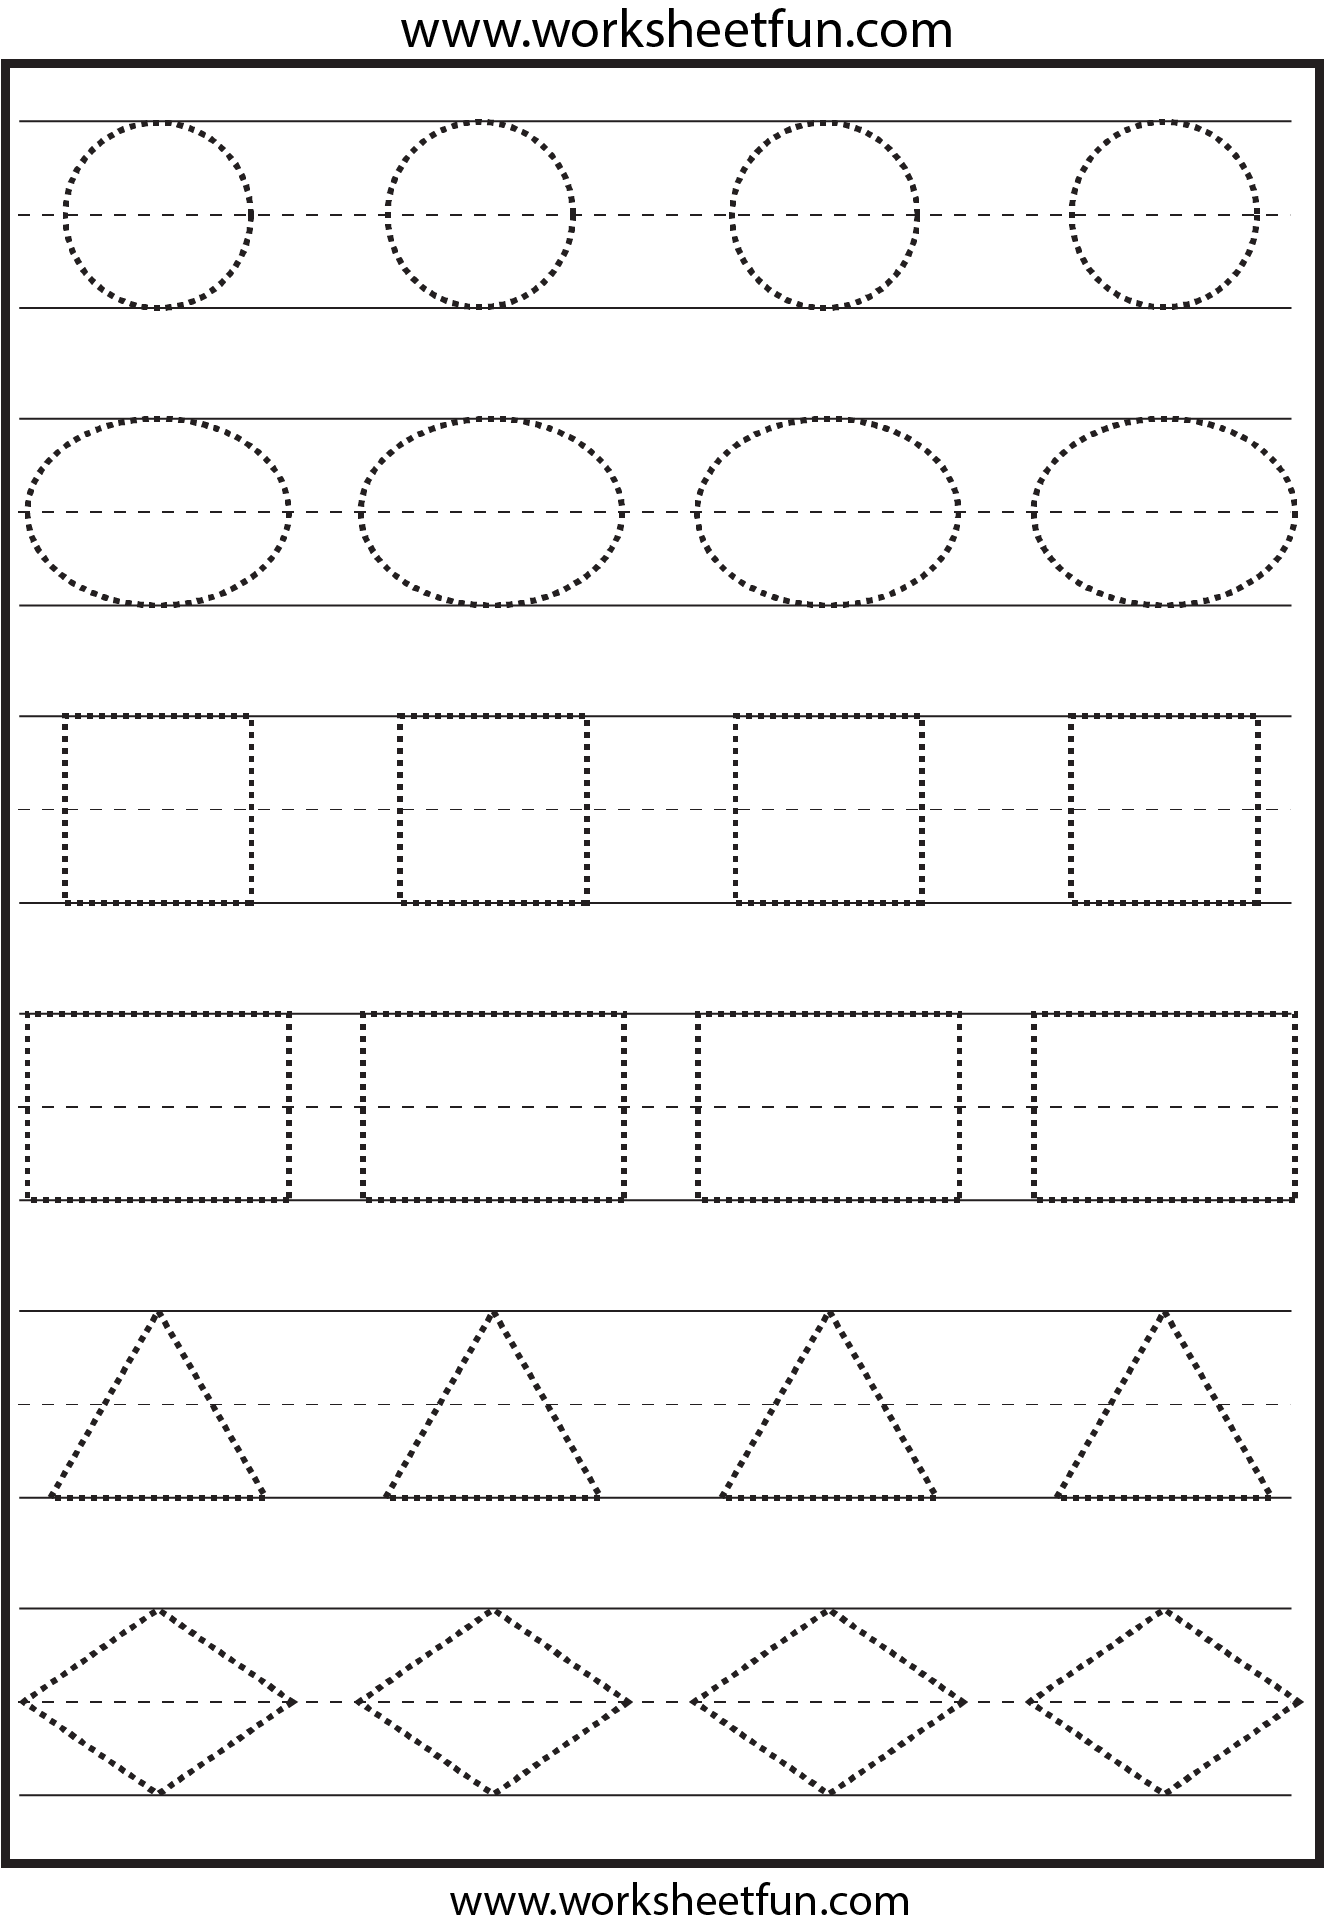 Tracing Shapes This Is Not The Right Image The Ones On The Page Were Not Pinnable